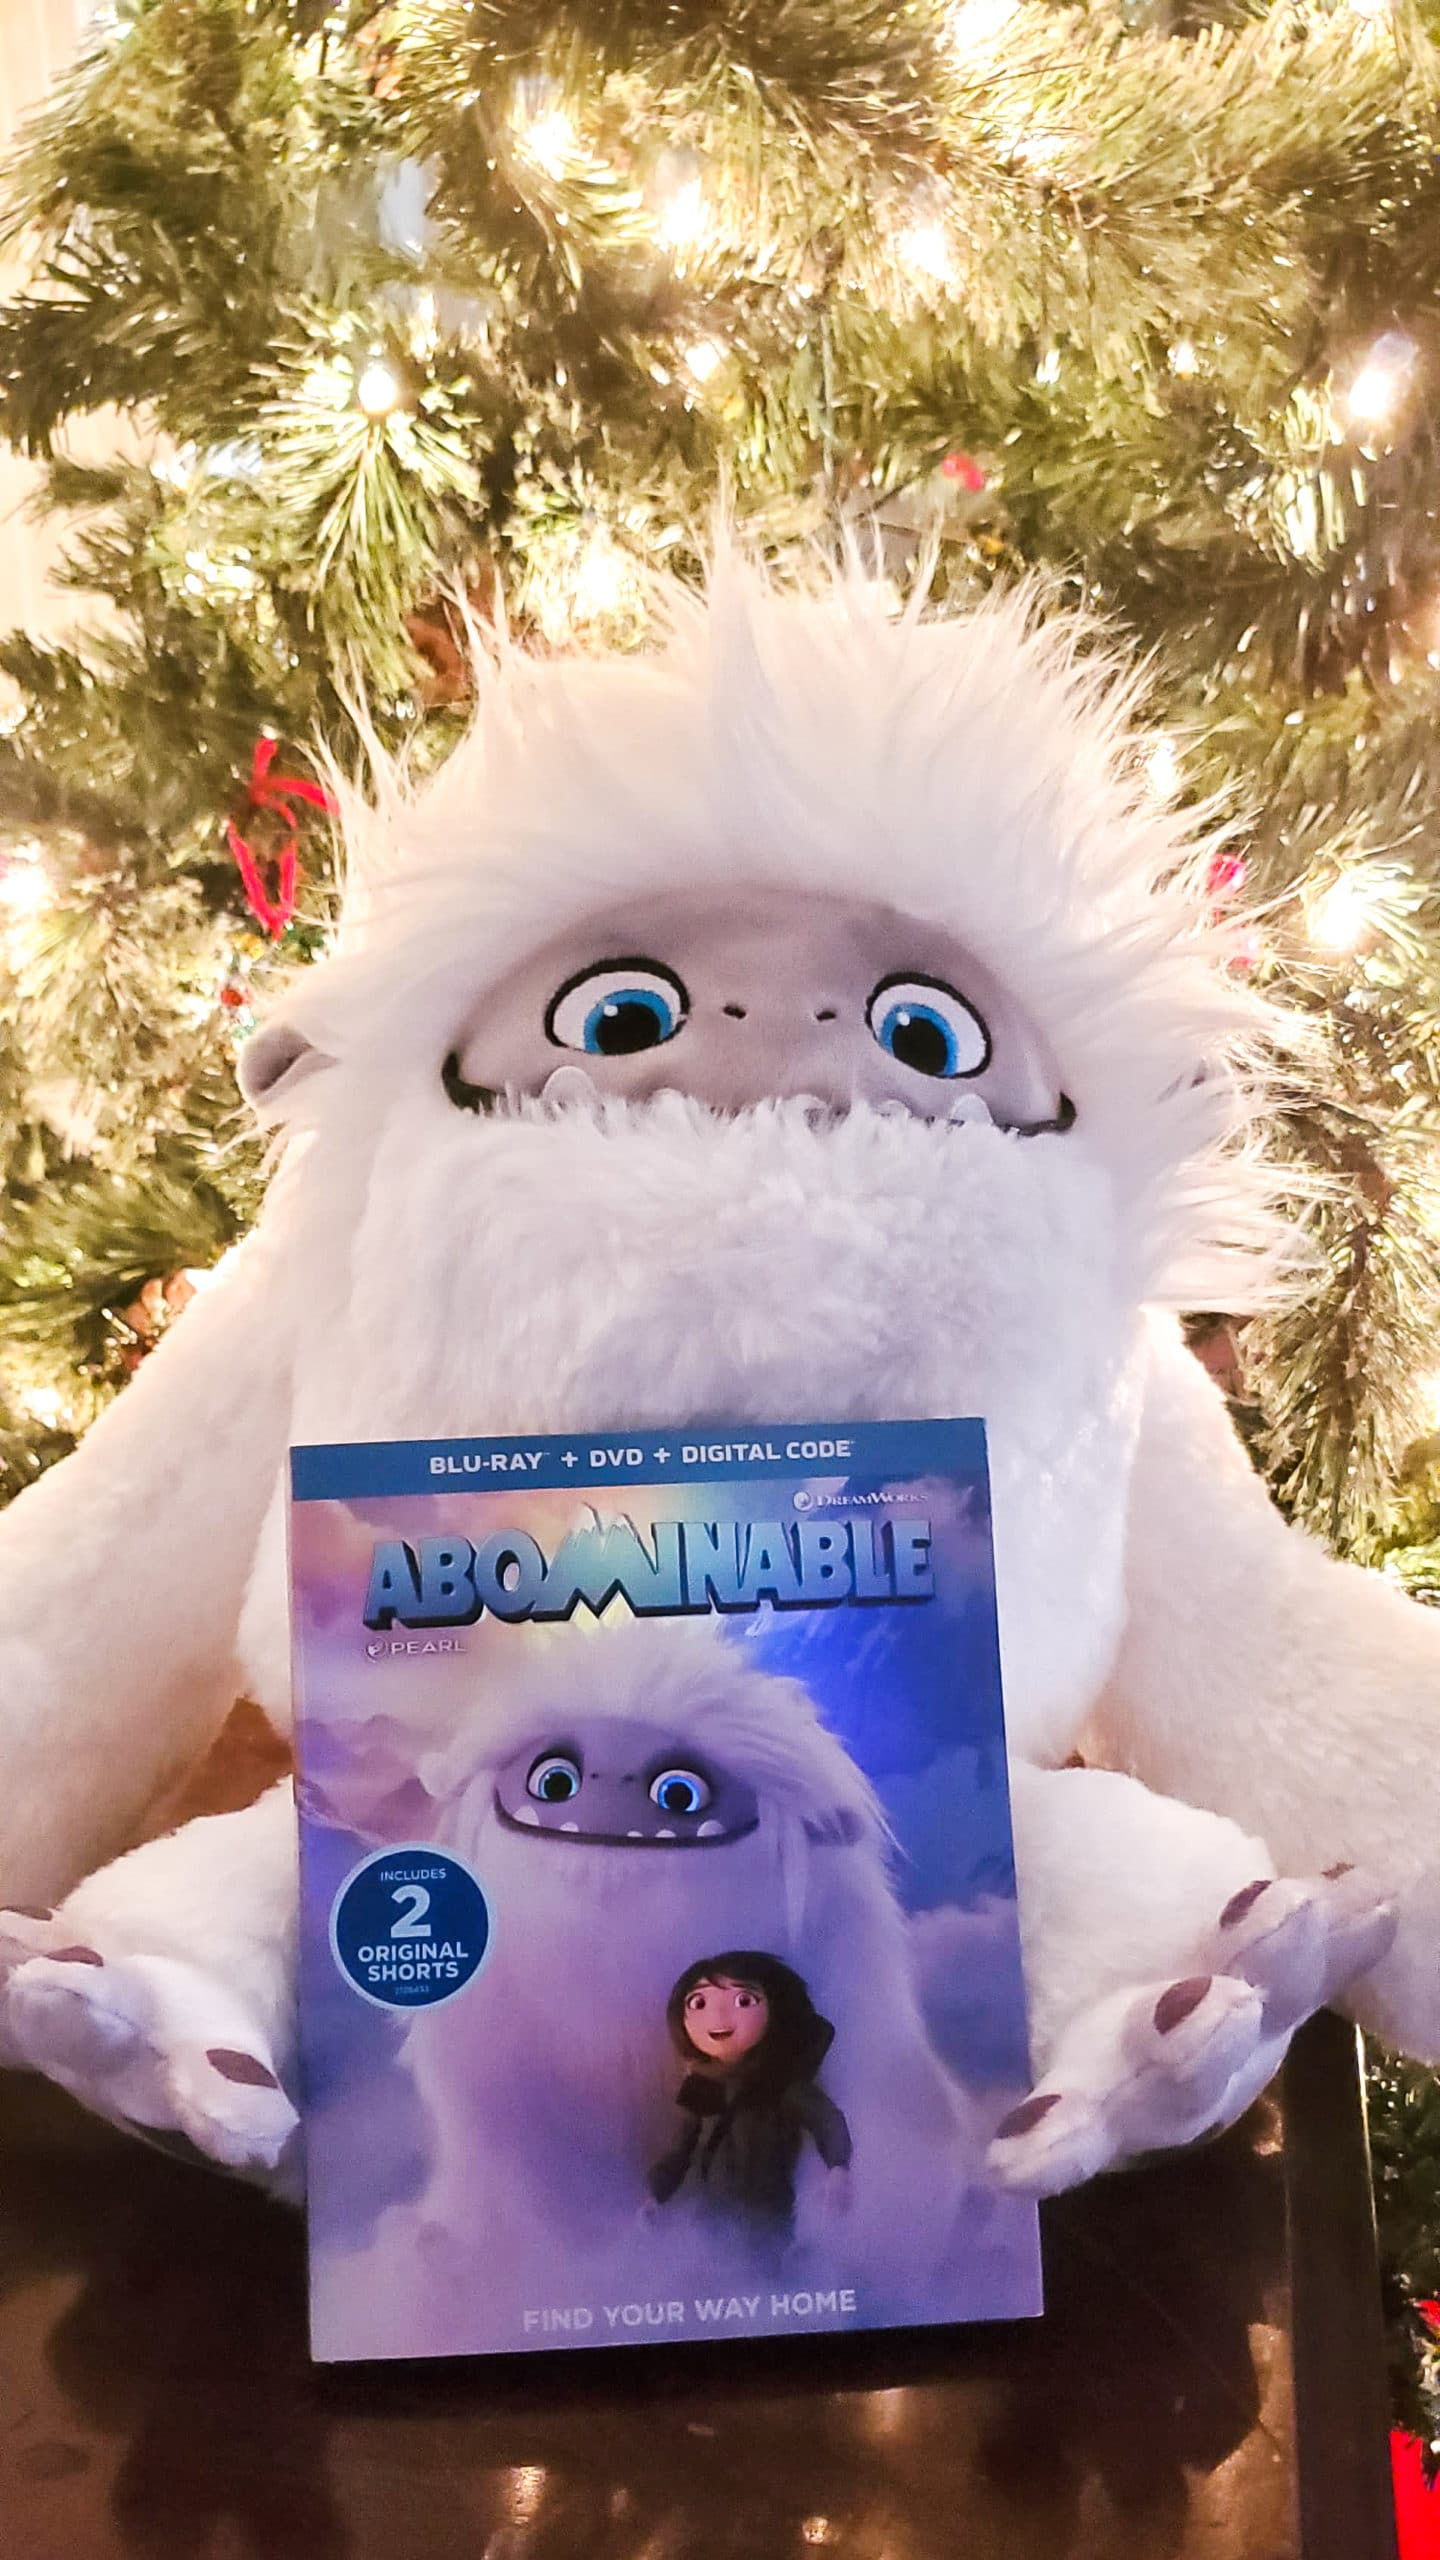 YI OR PENG NEW 2019 EVEREST DREAMWORKS ABOMINABLE SMALL PLUSH